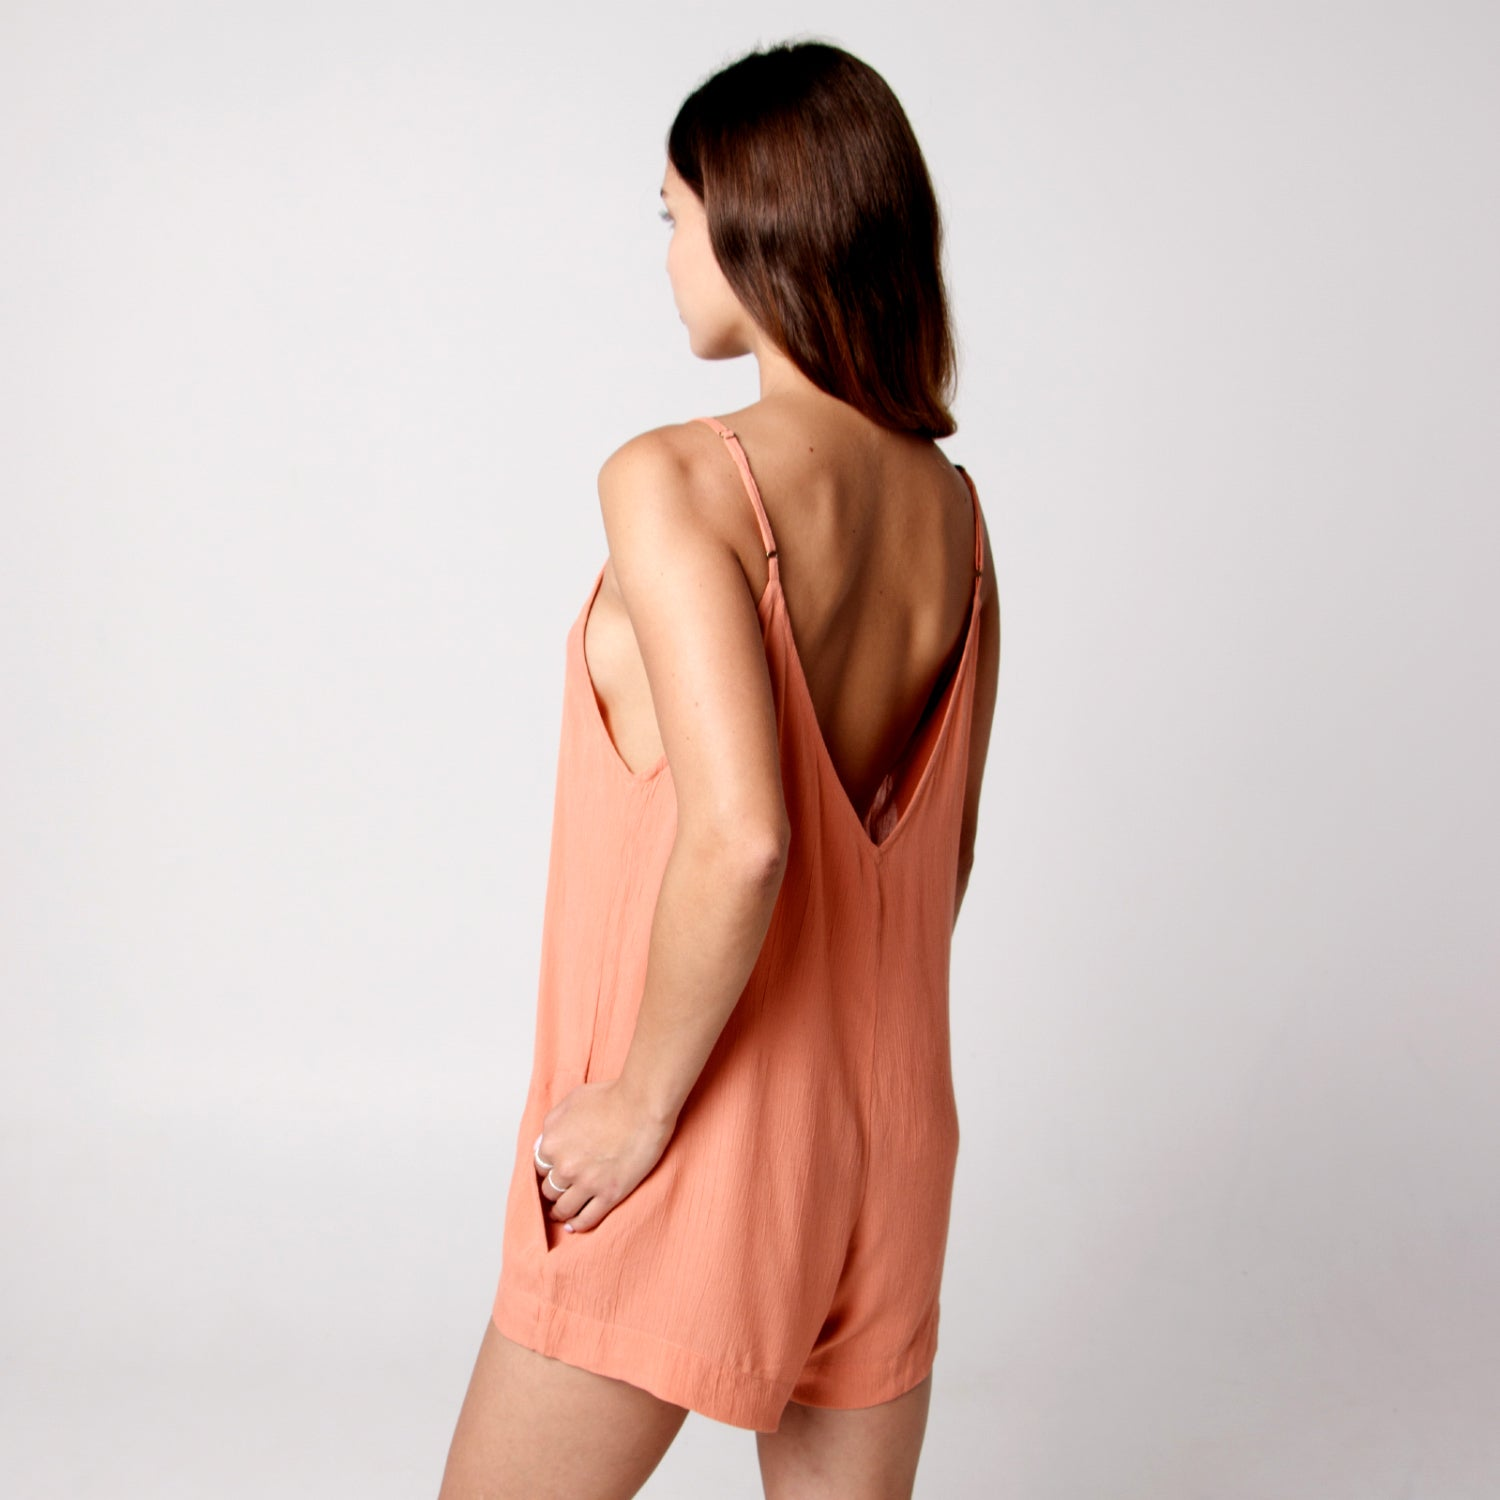 Java Java Playsuit - Coral Pink